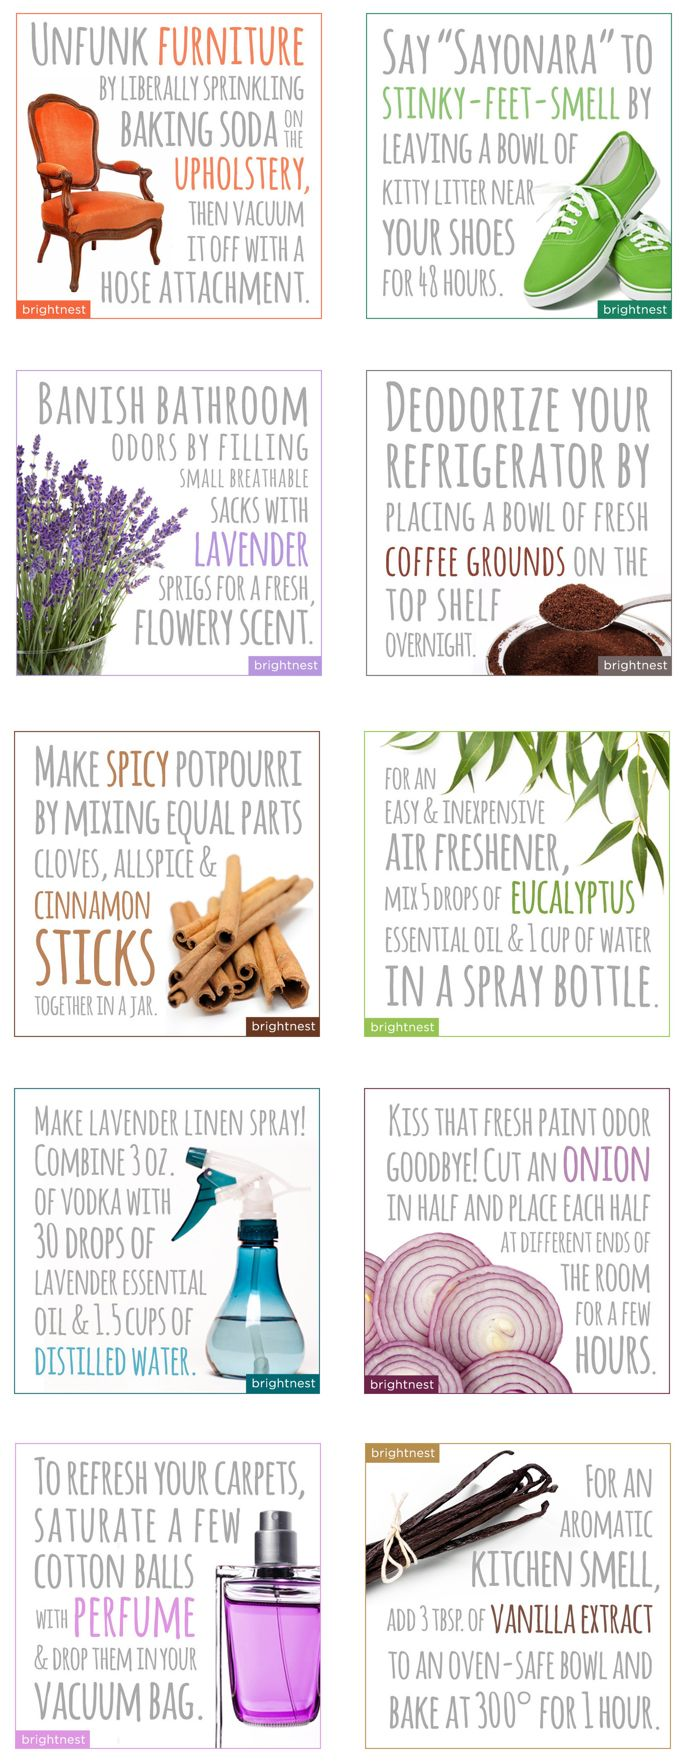 Cleaning your house with essential oils. Simple home-deodorizer tricks to clean furniture, get rid of stinky feet smells, make a room smell better, deodorize your refrigerator, make potpourri, make an air freshener, and more!